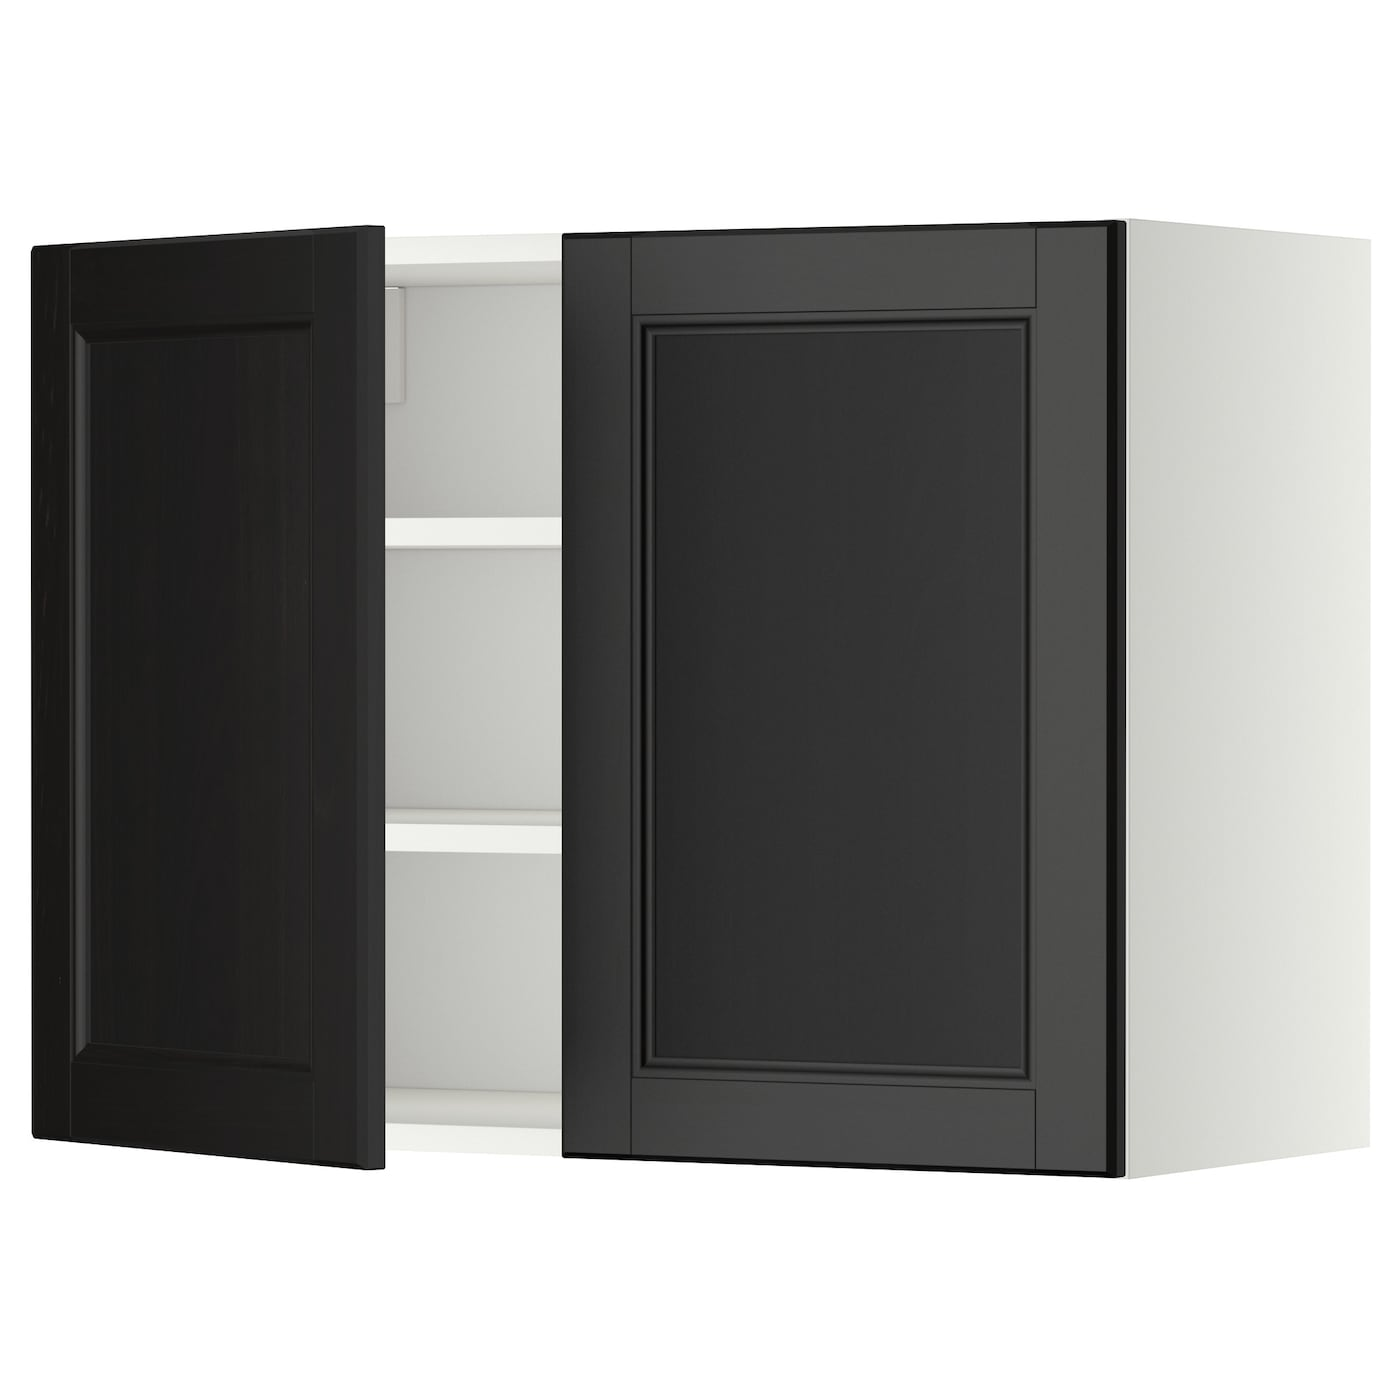 Metod Wall Cabinet With Shelves 2 Doors White Laxarby